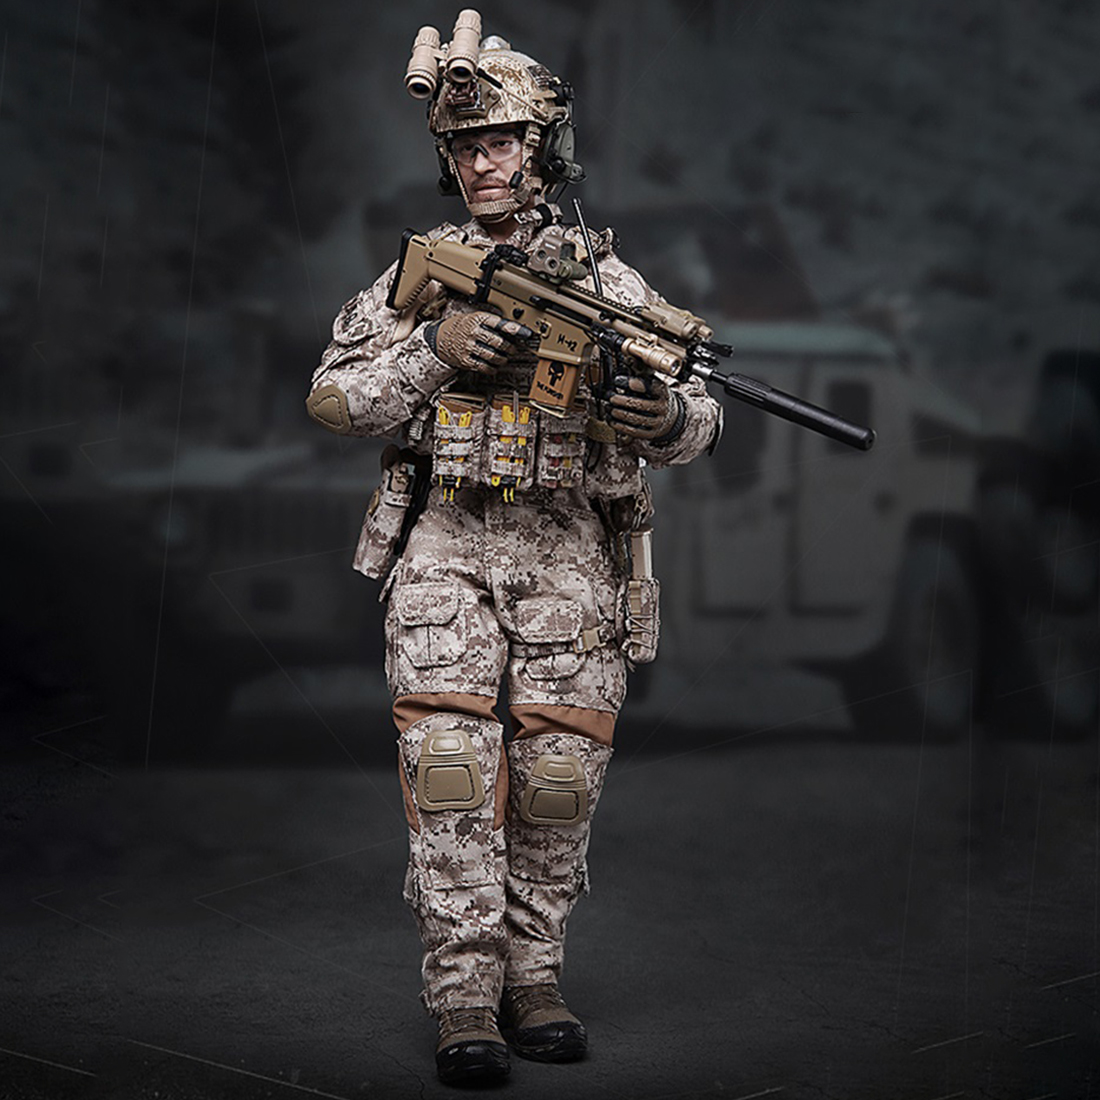 1/6 30cm Soldier Model Realistic Headsculpt DIY Movable US Army Navy Seals Military Figure Model Toy For Kids Adults